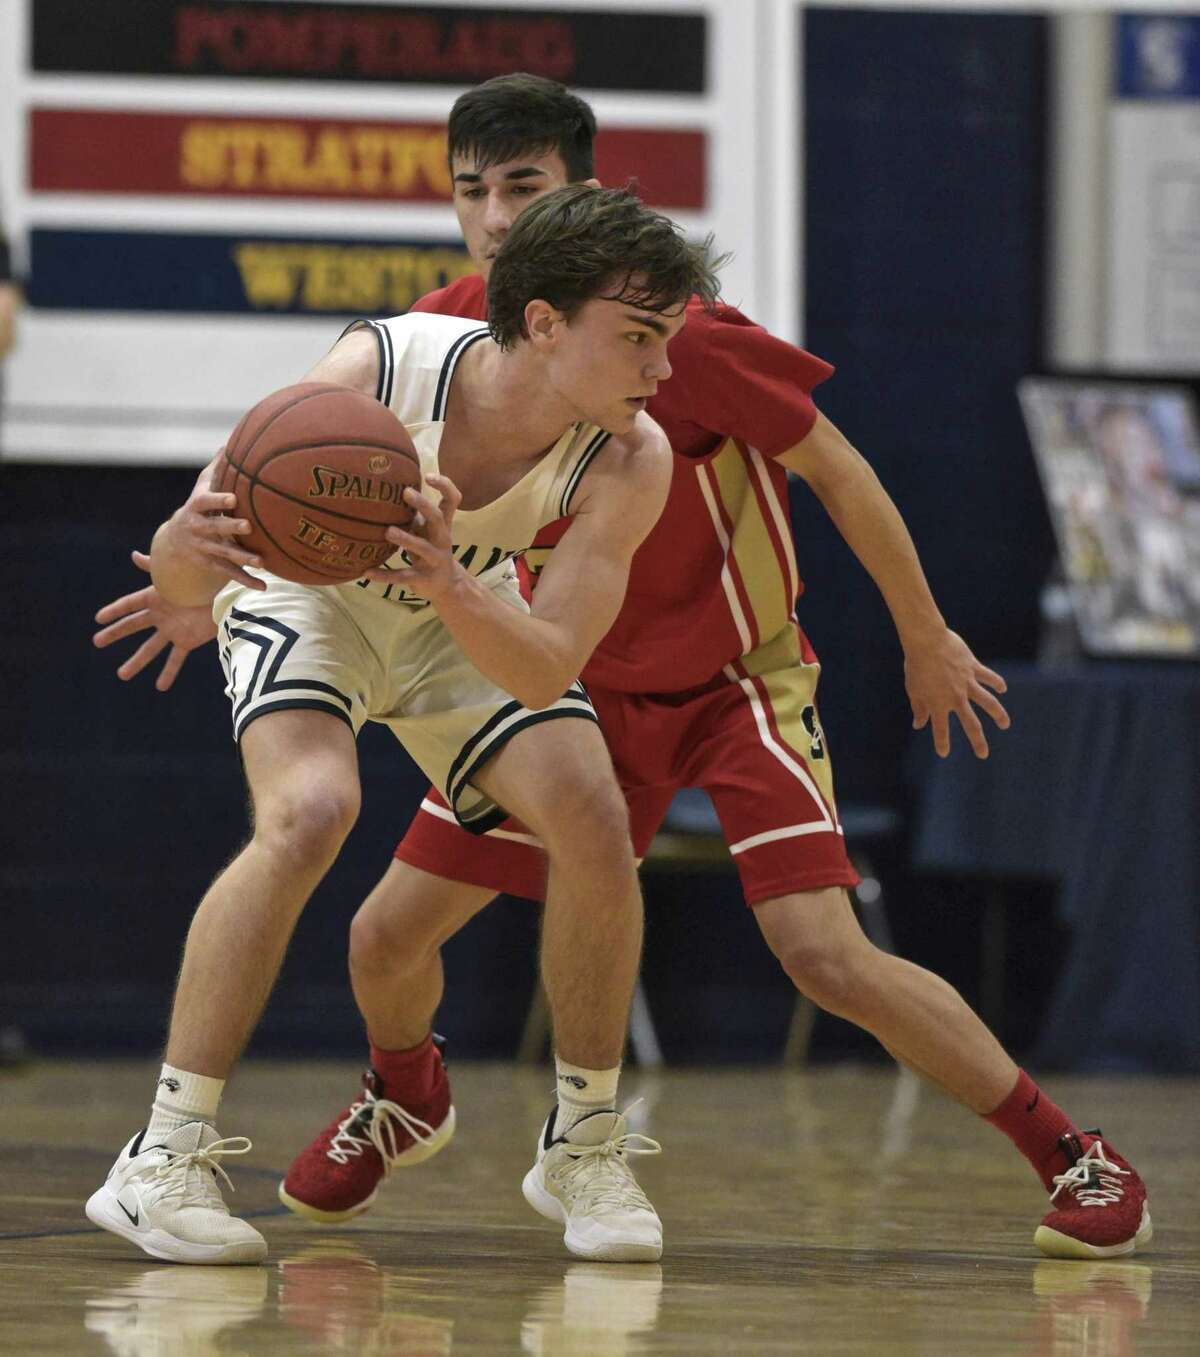 Boys basketball game between Stratford and Immaculate high schools, Thursday night, February 14, 2019, at Immaculate High School, in Danbury, Conn.